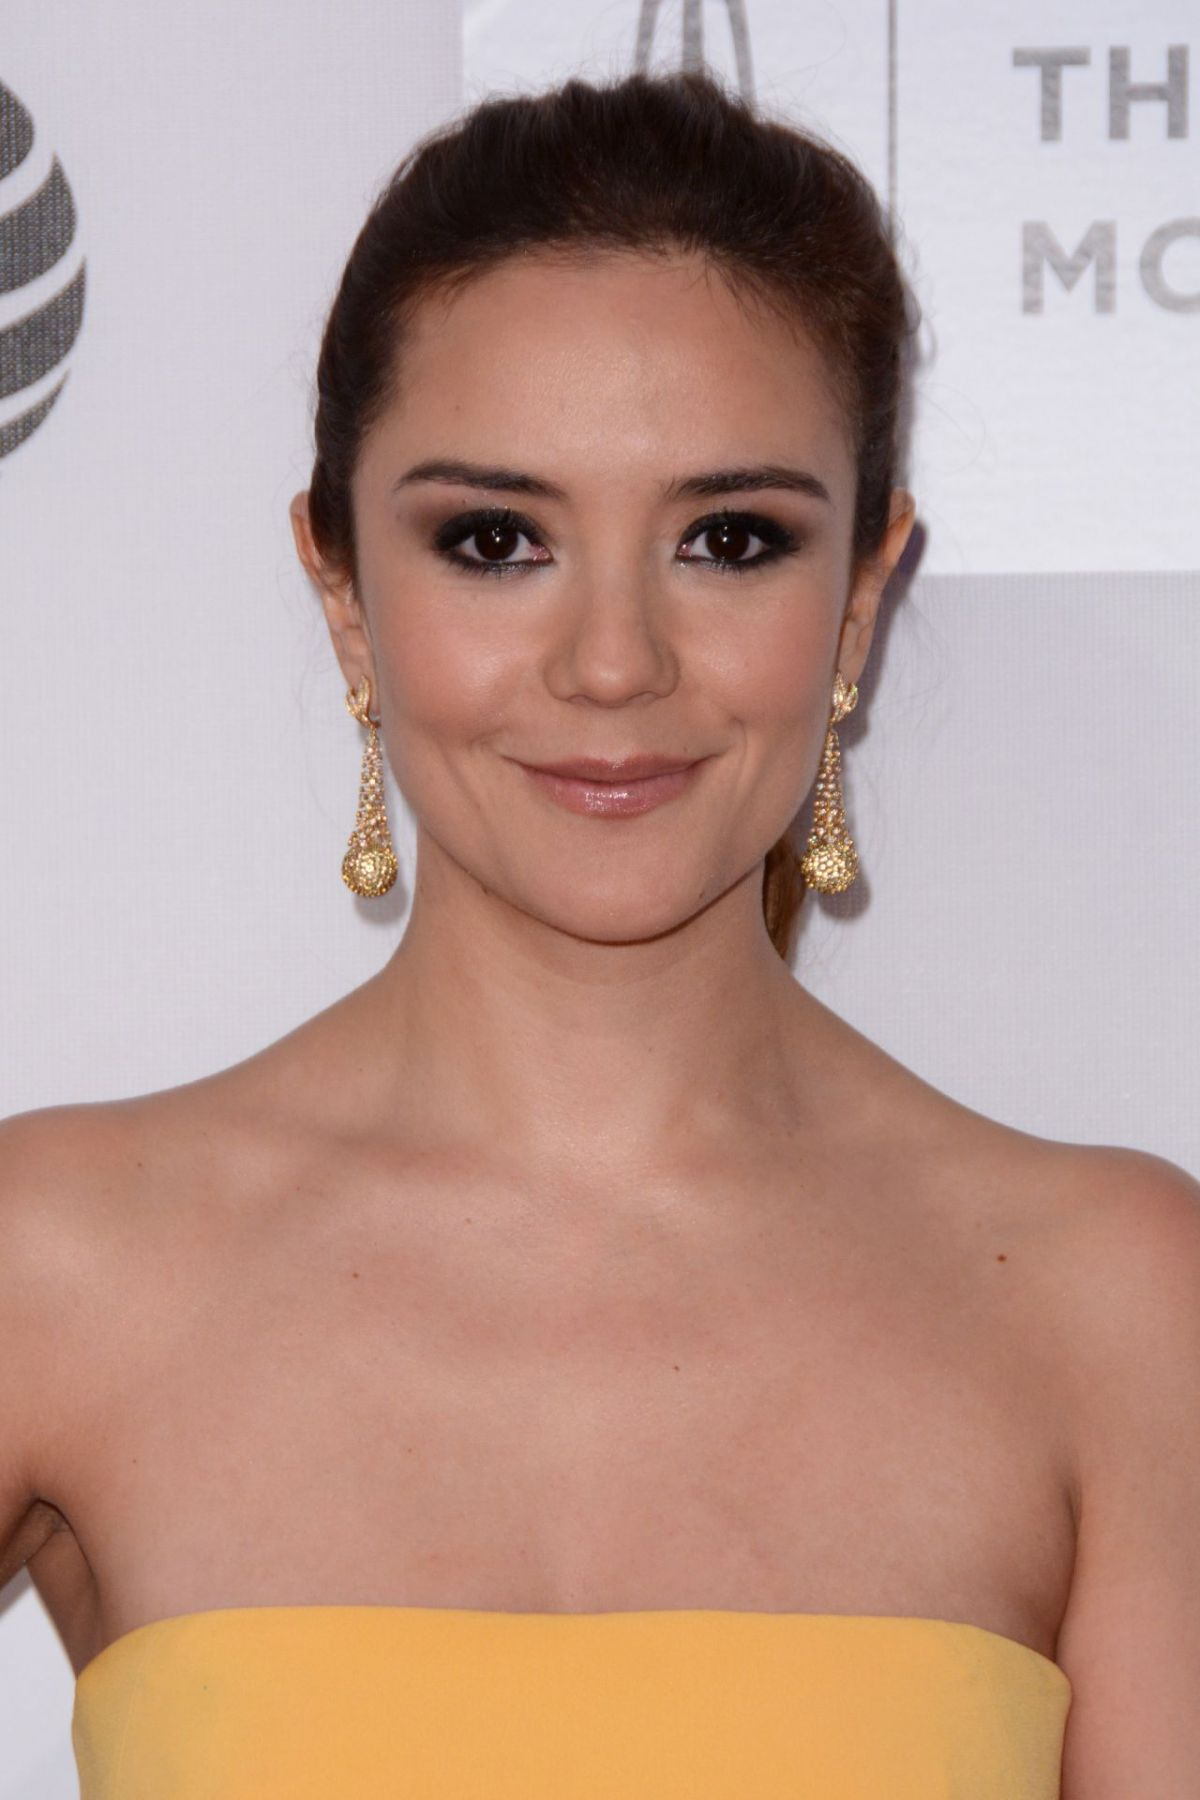 CATALINA SANDINO at